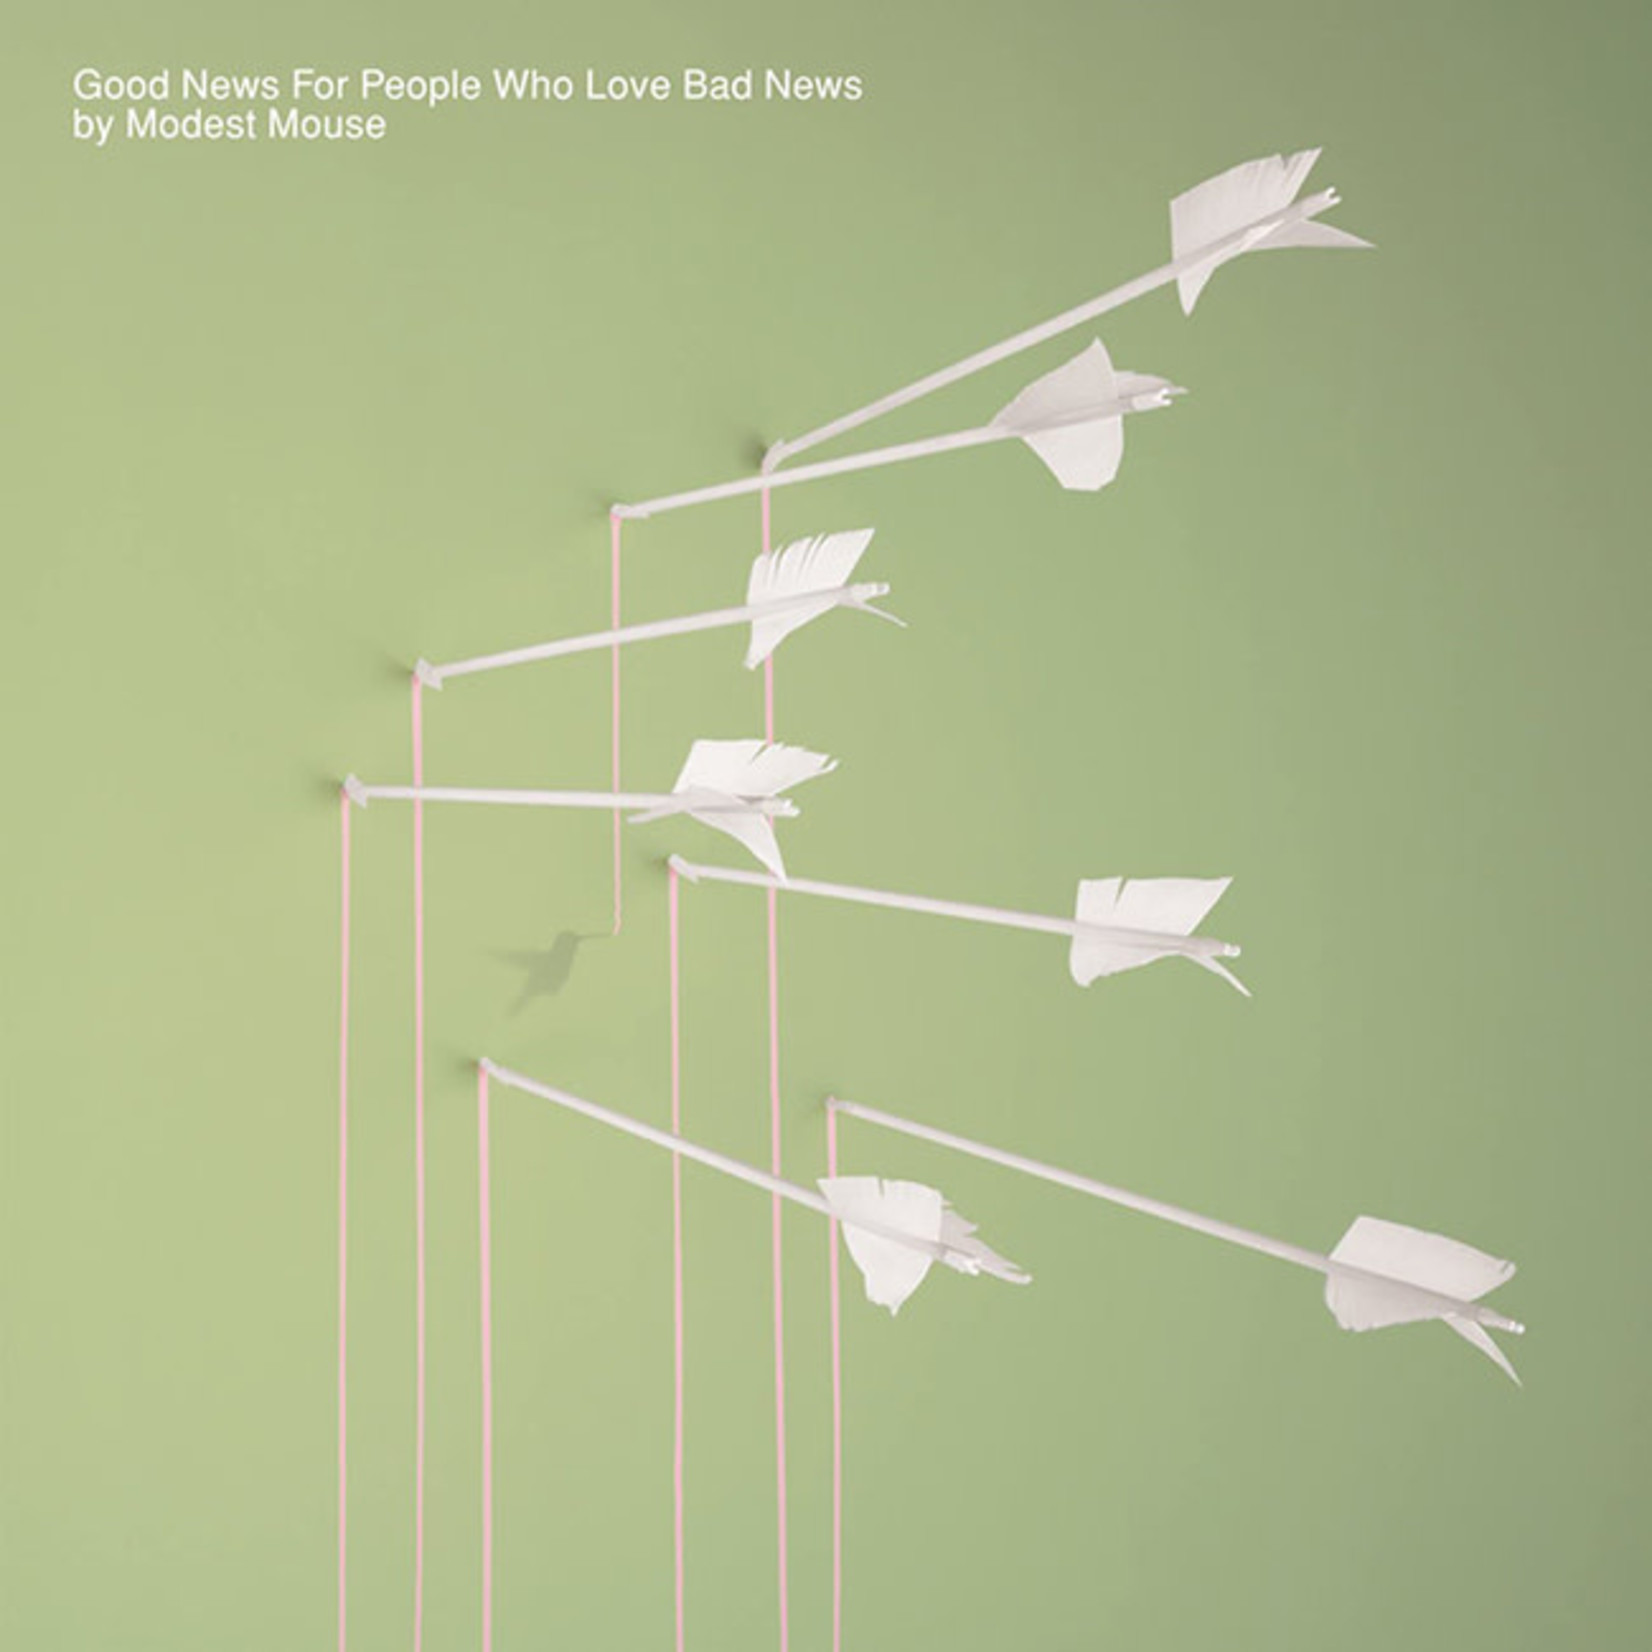 [New] Modest Mouse: Good News For People Who Love Bad News